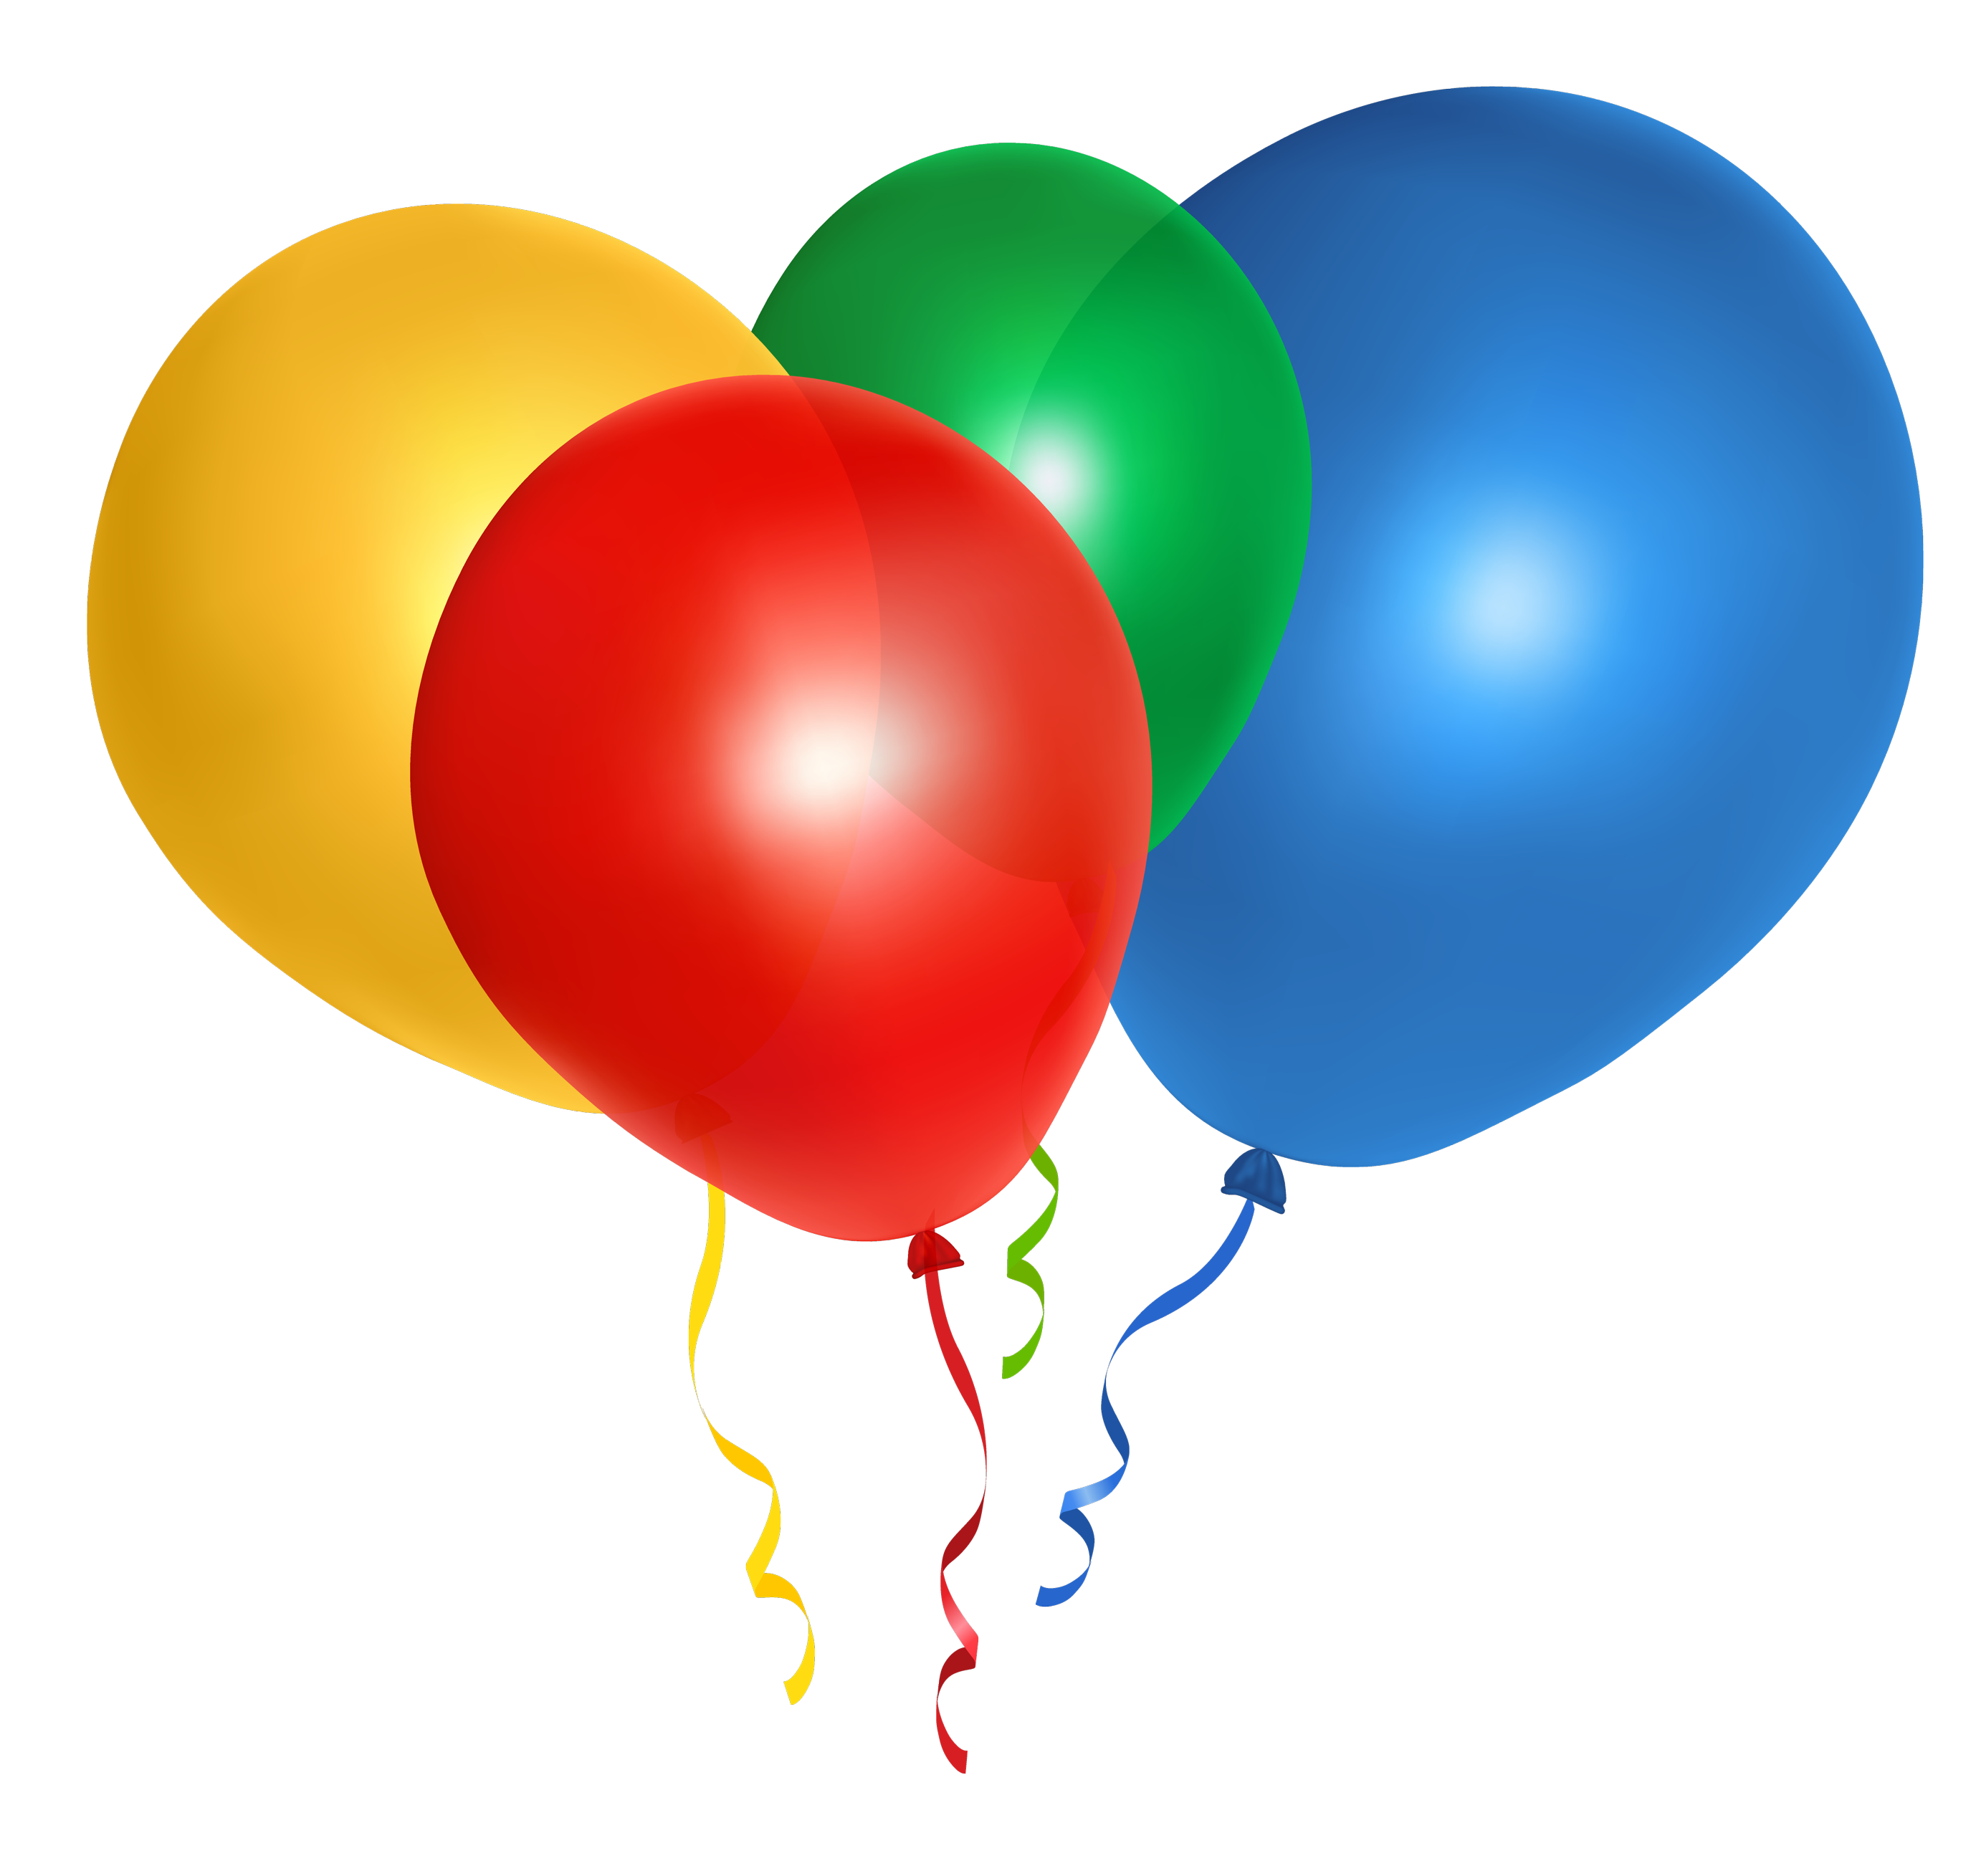 PNG File Name: Balloons PNG HD Dimension: 2750x2618. Image Type: .png.  Posted on: Aug 15th, 2016. Category: Holidays Tags: Balloons - Balloon PNG